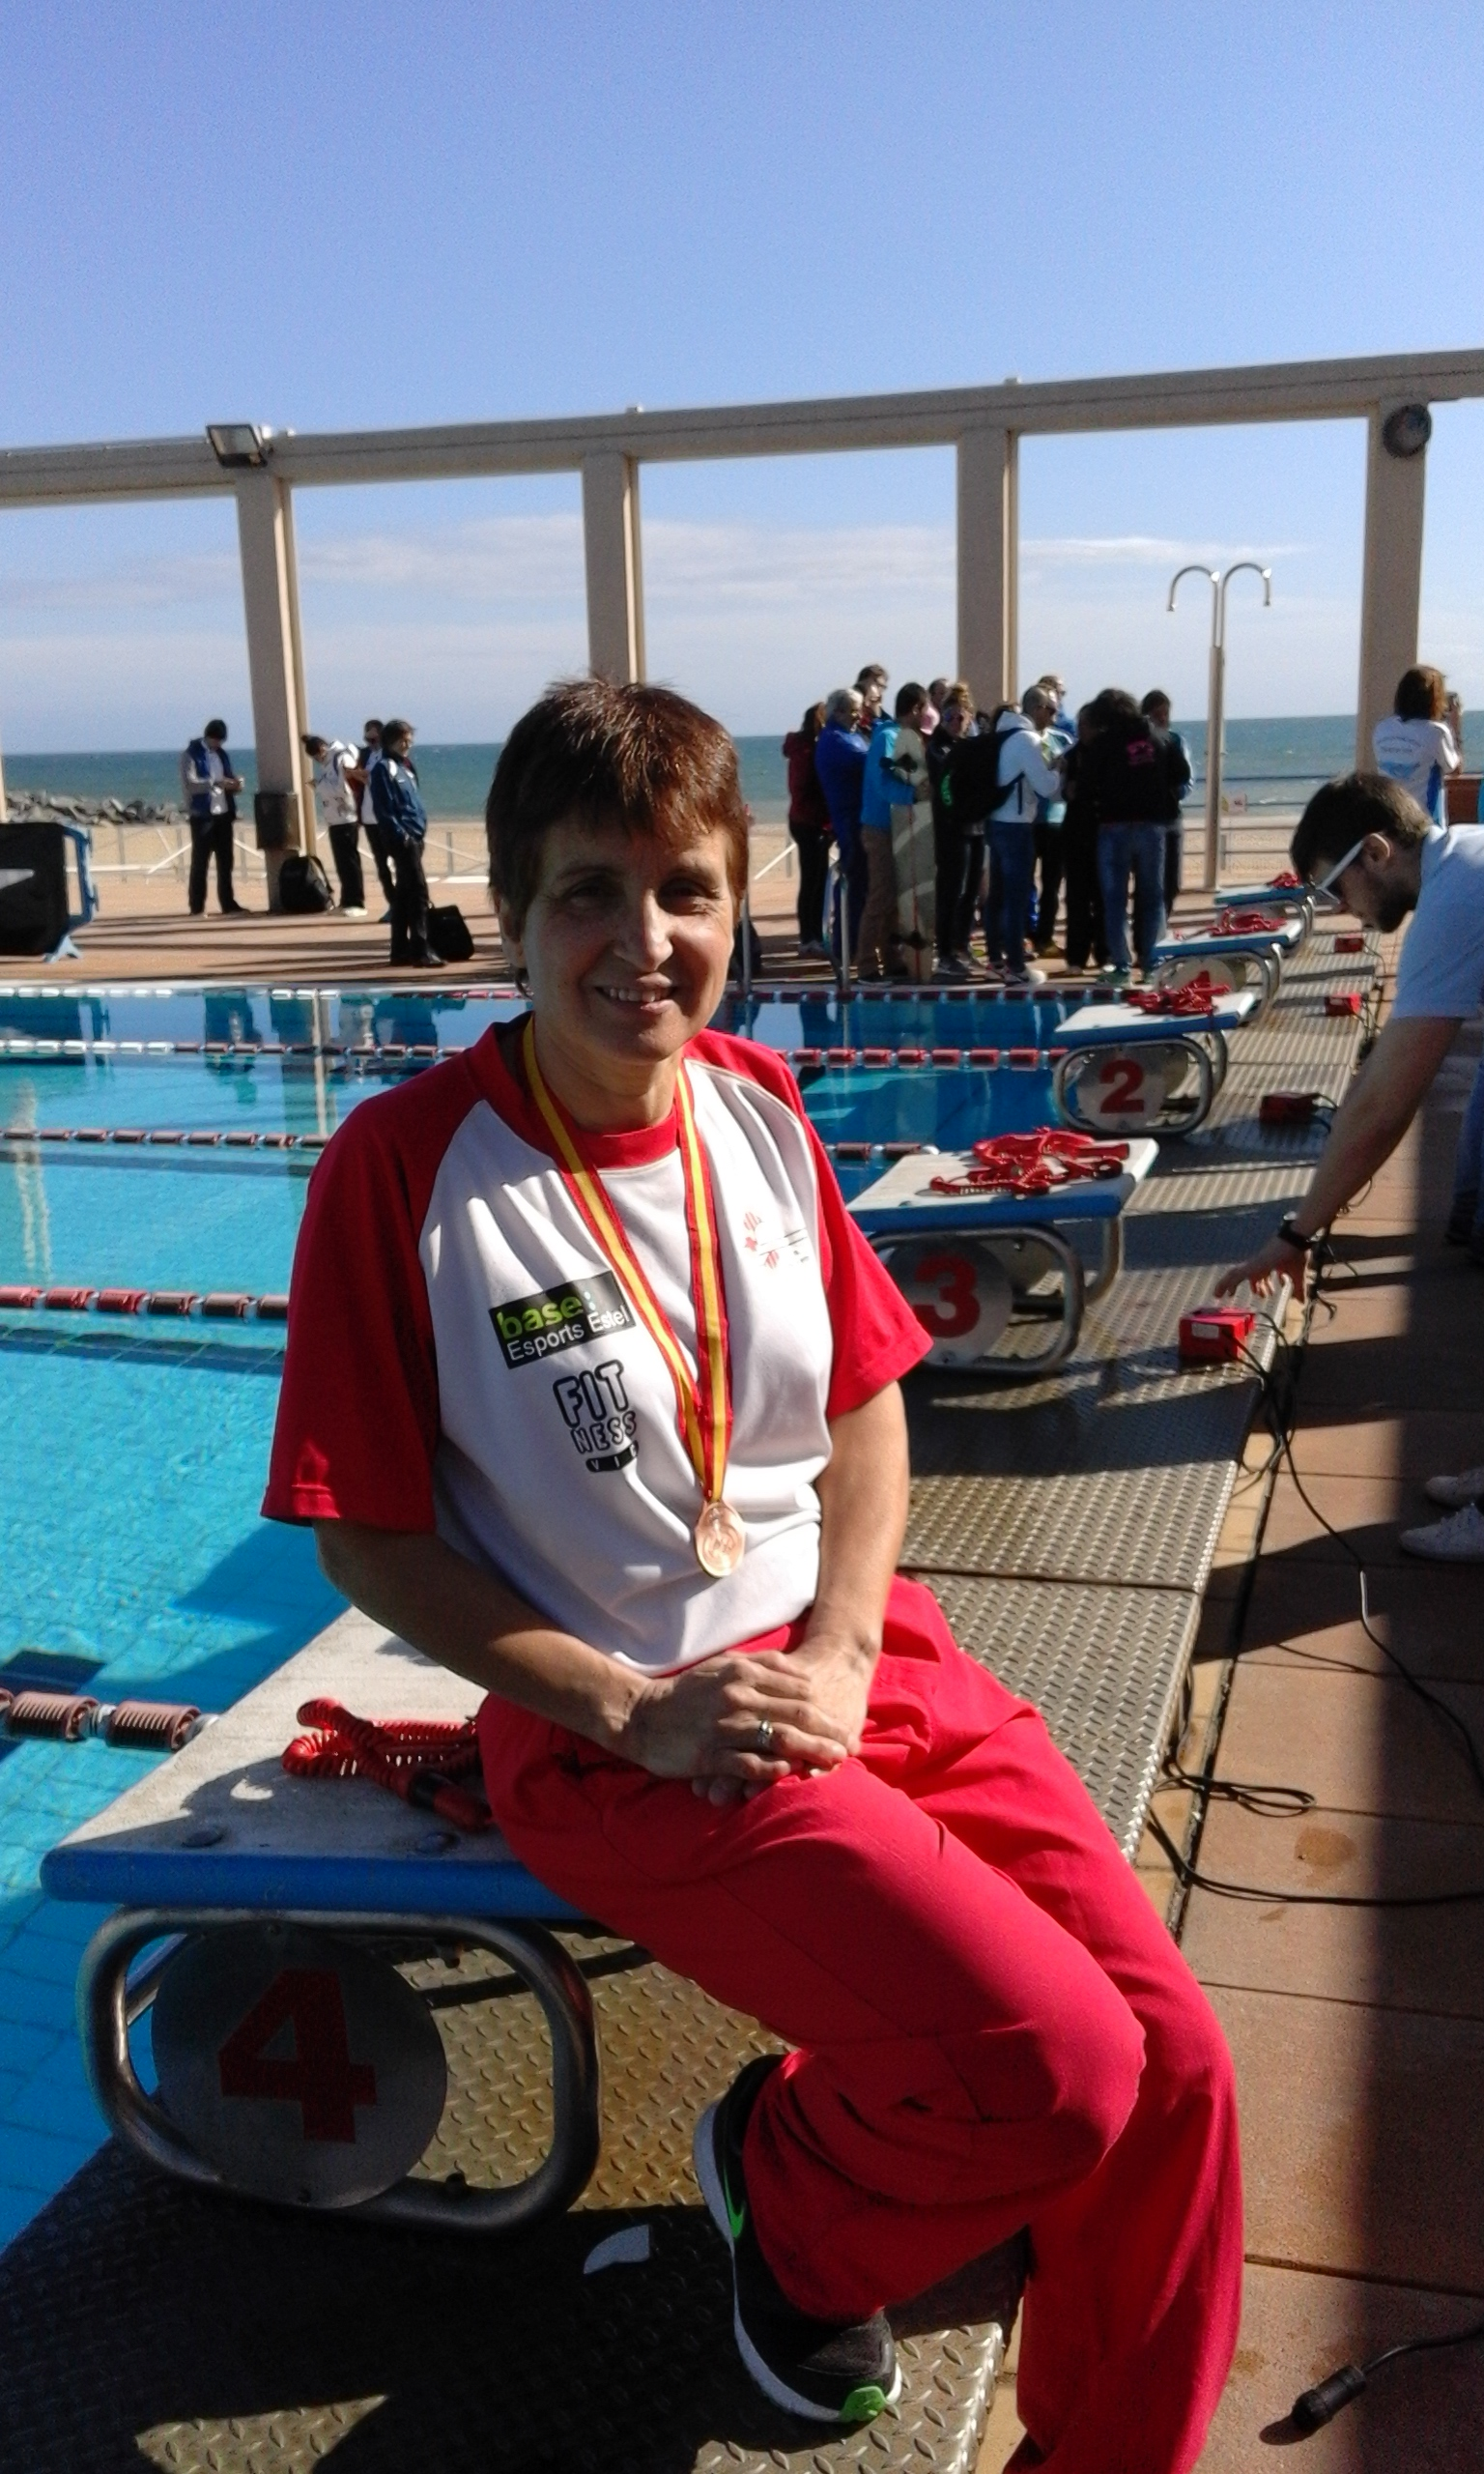 Maria gracia masgrau cnvic bronze als estatals de for Piscina municipal mataro